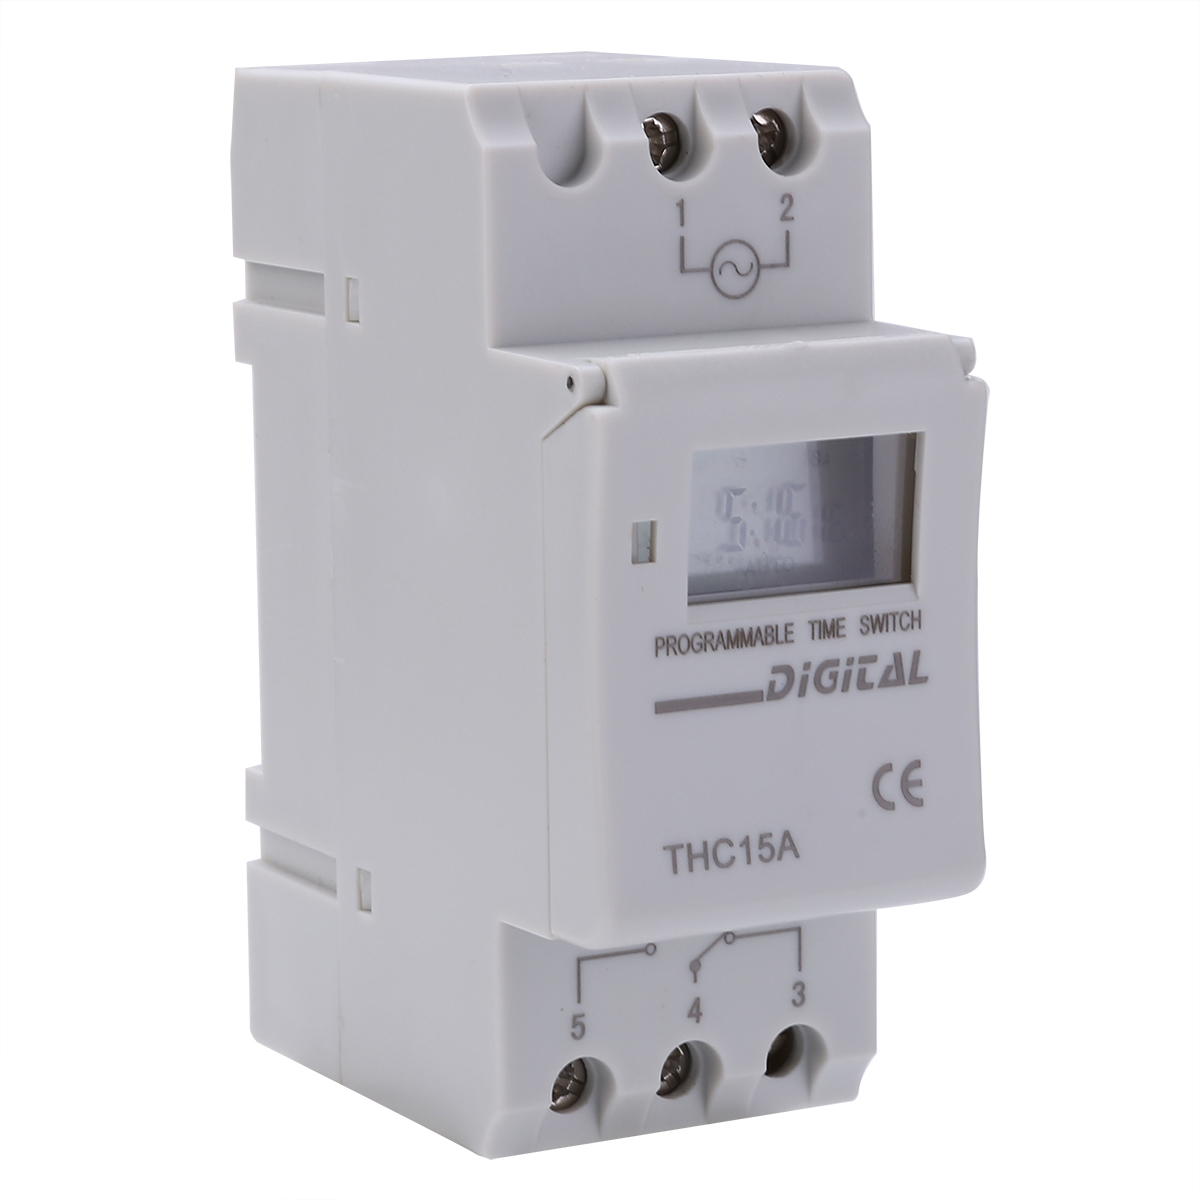 Computer & Office Kg316t-ii Mini Programmable Din Rail Digital Lcd Timer Switch Electronic Home Security Control Switch Automatic Timer Switch Cheap Sales 50%